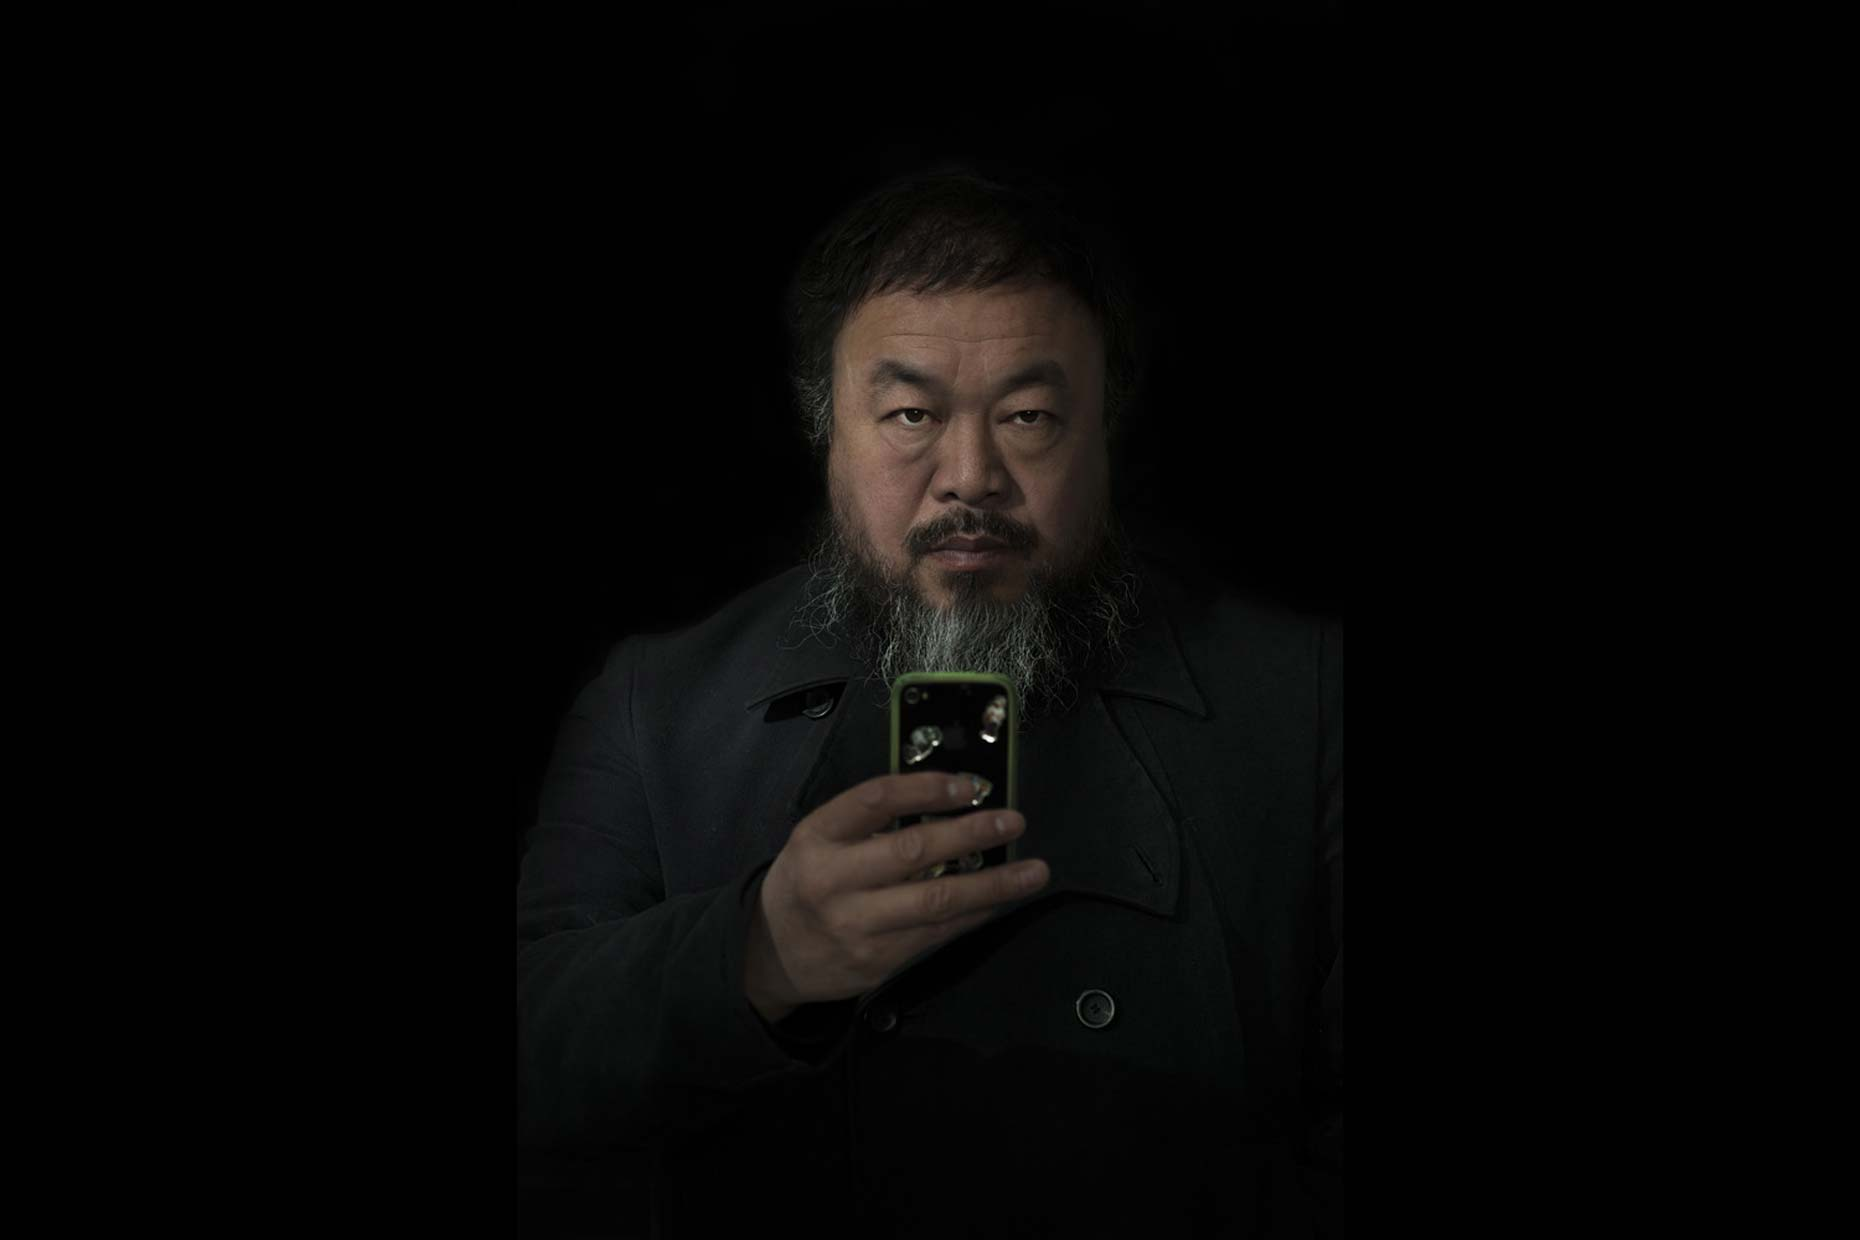 Portrait of Ai weiwei | Smithsonian Magazine | World Press Photo |Beijing, China | Stefen Chow